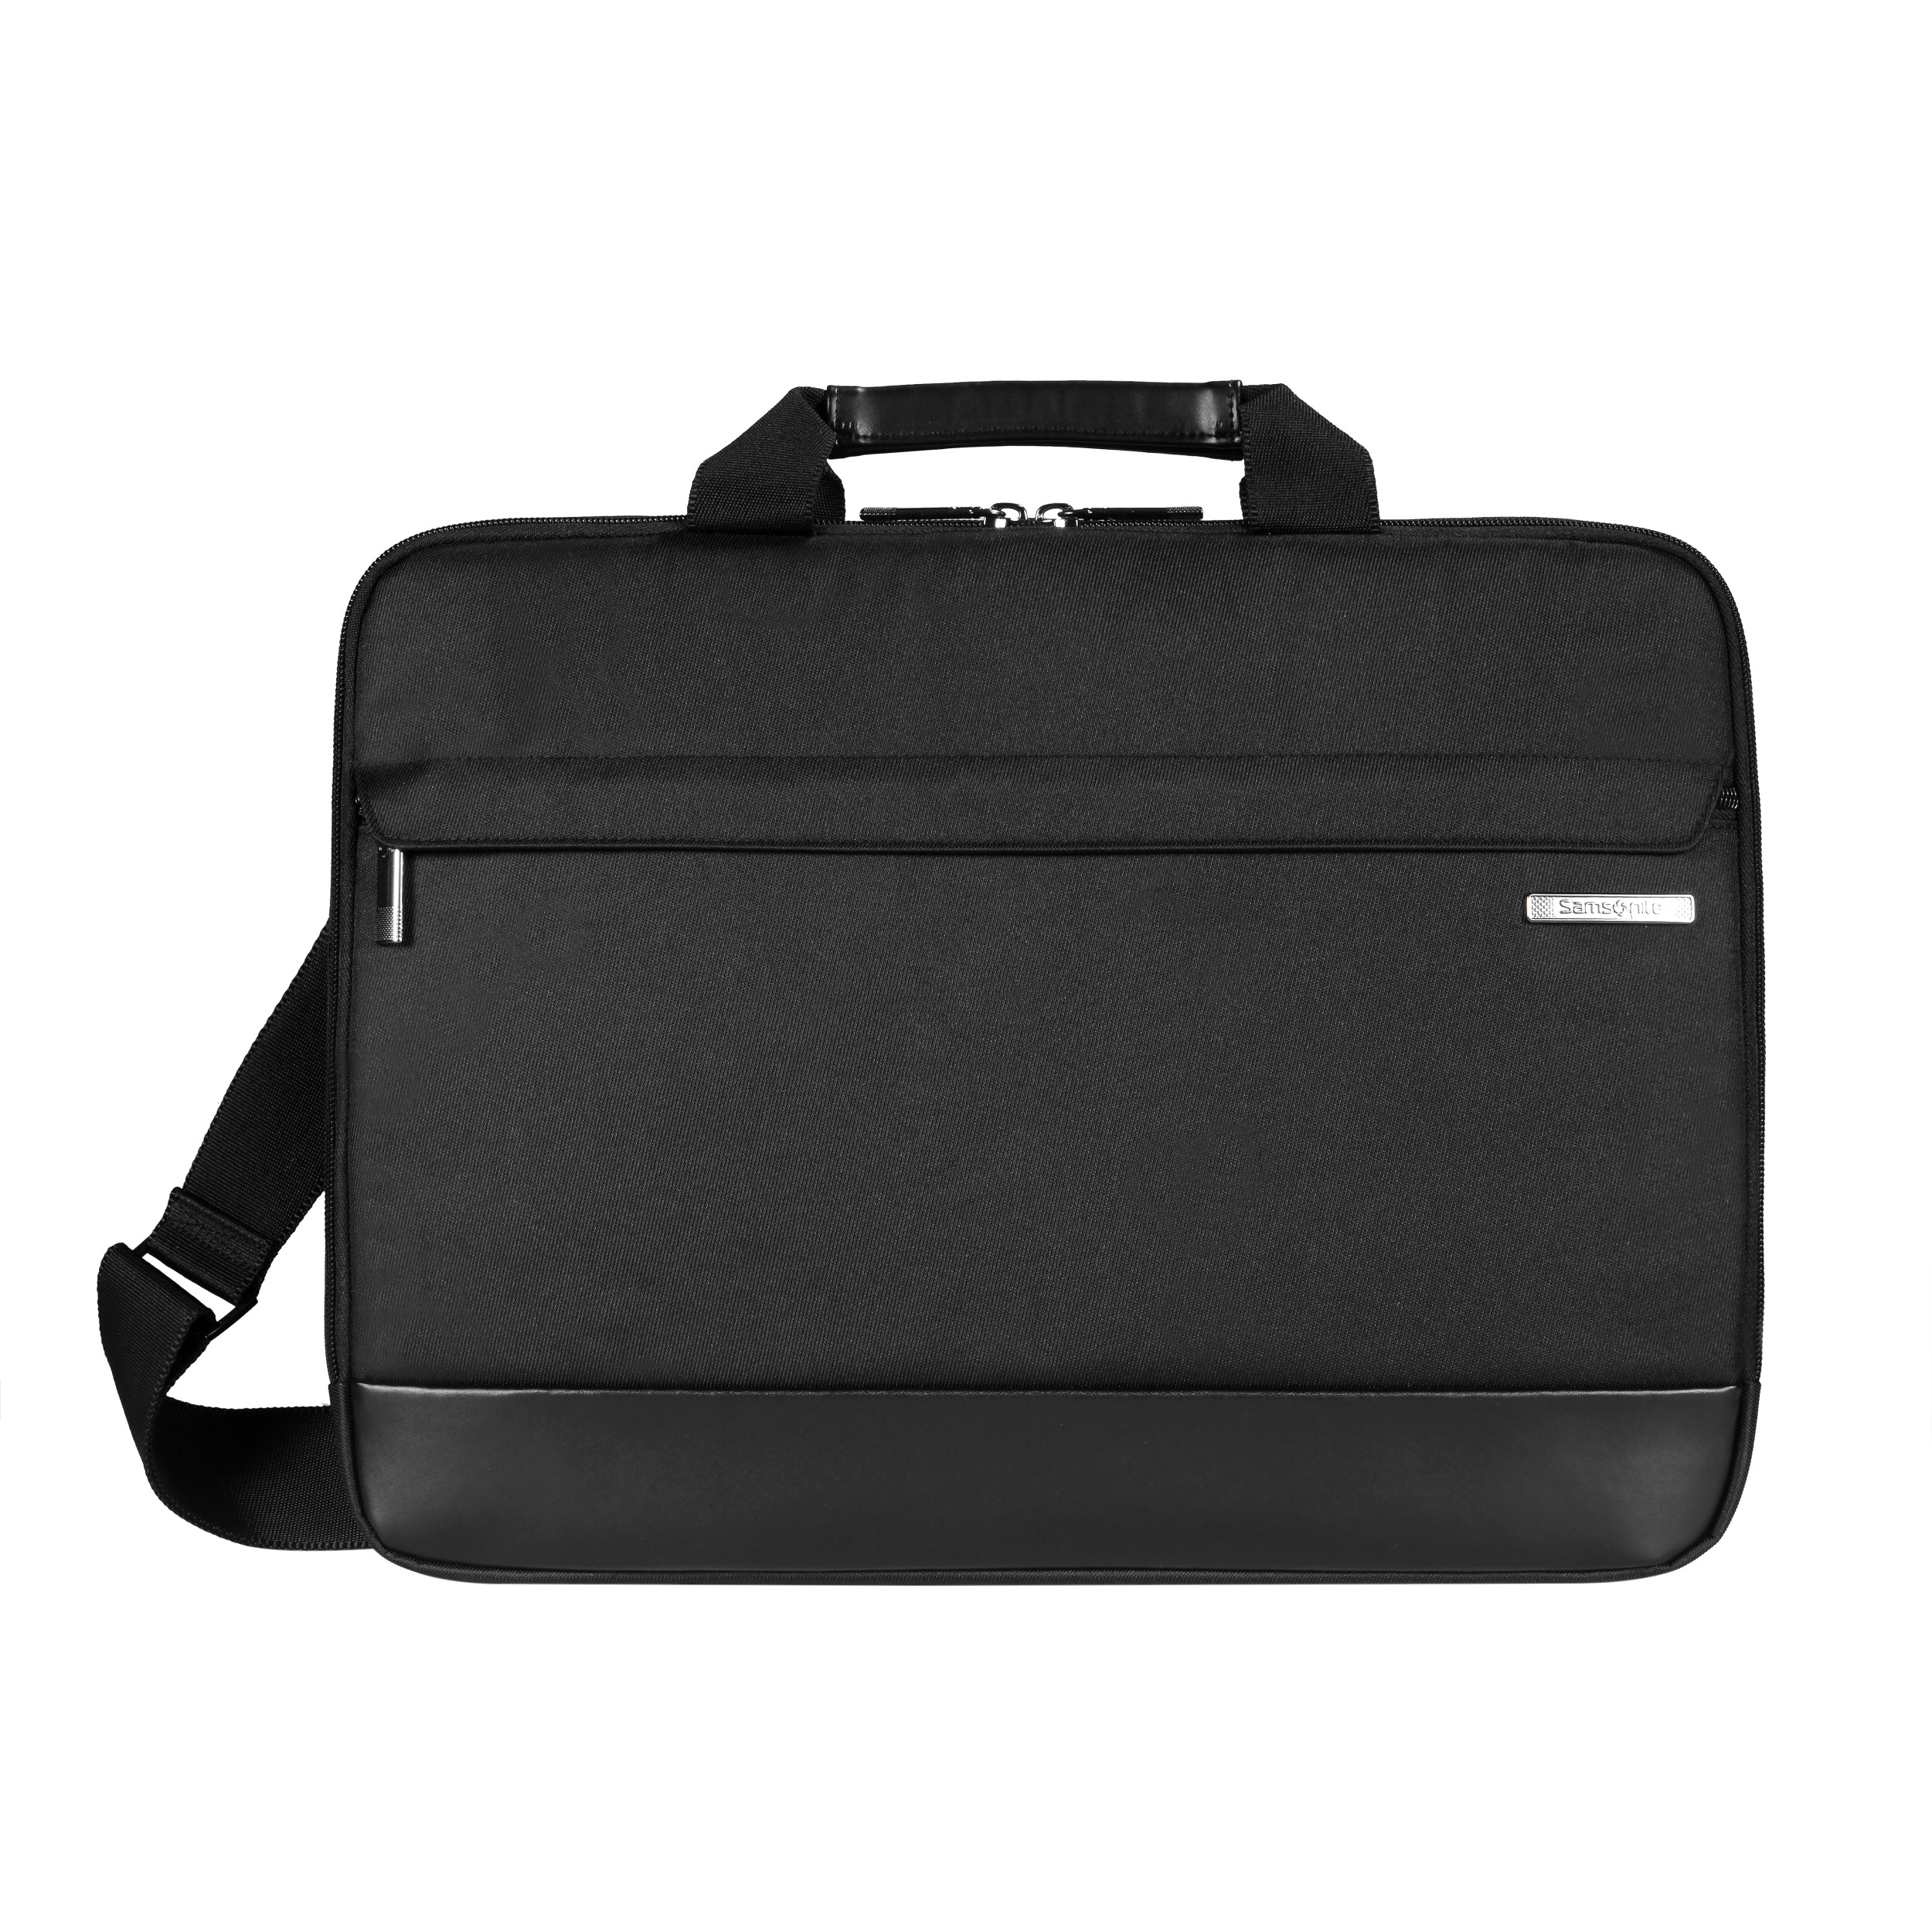 Samsonite 100011-001 - Executive Computer Slim Brief